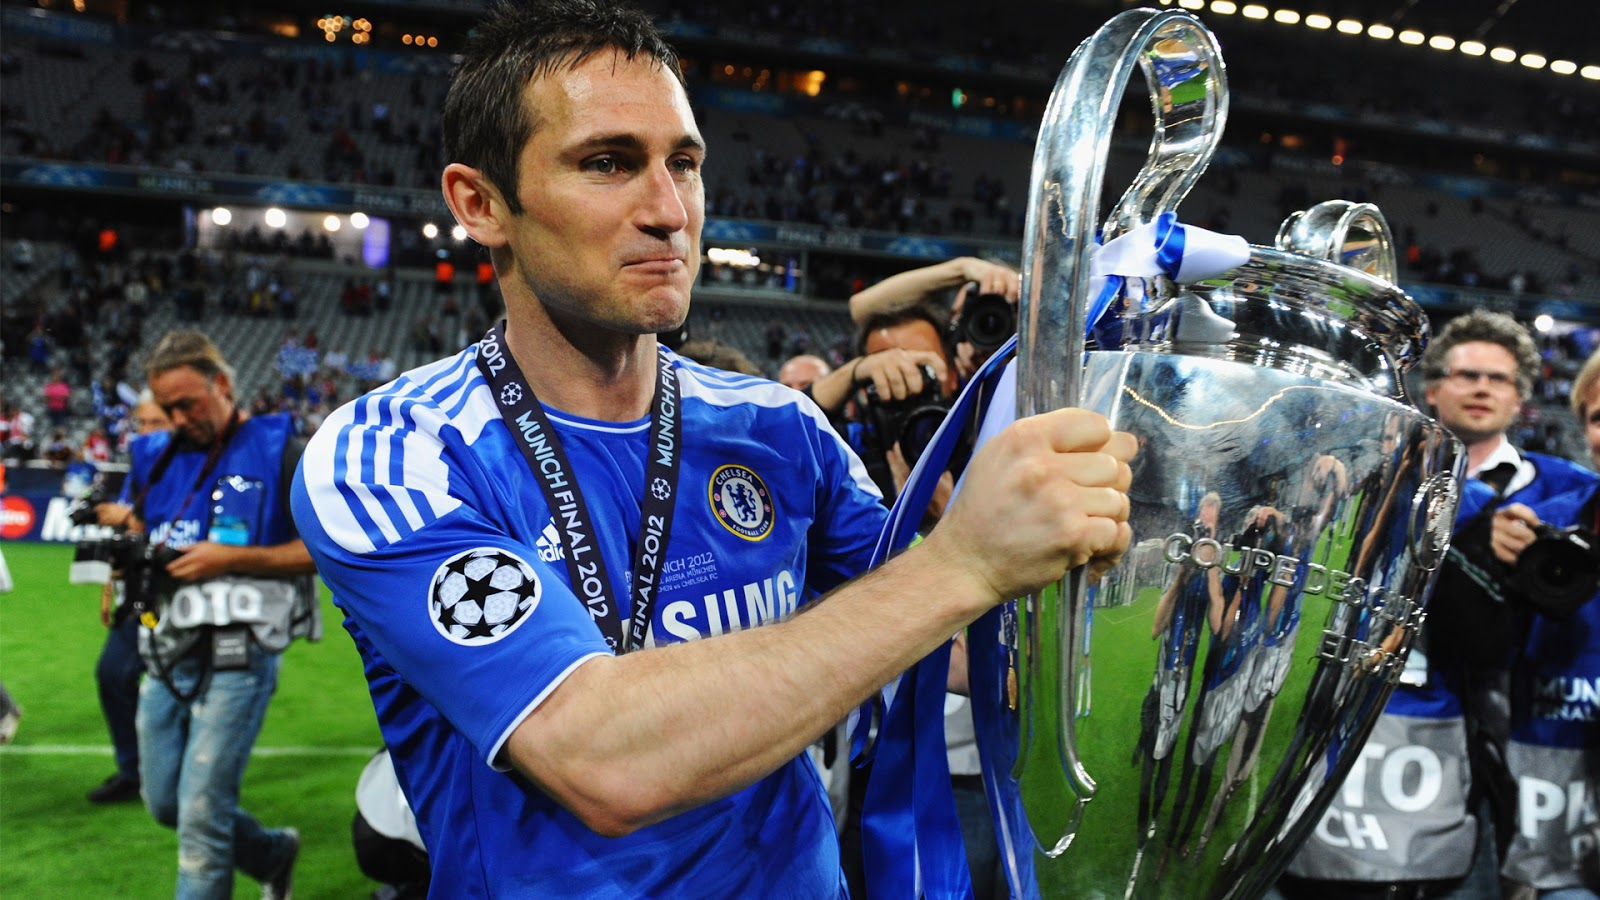 Frank lampard hd wallpapers high definition free background frank lampard full hd wallpapers 1080p free downloadfrank lampard hdwallpapers 1920x1080 download at hdwalle for free voltagebd Images